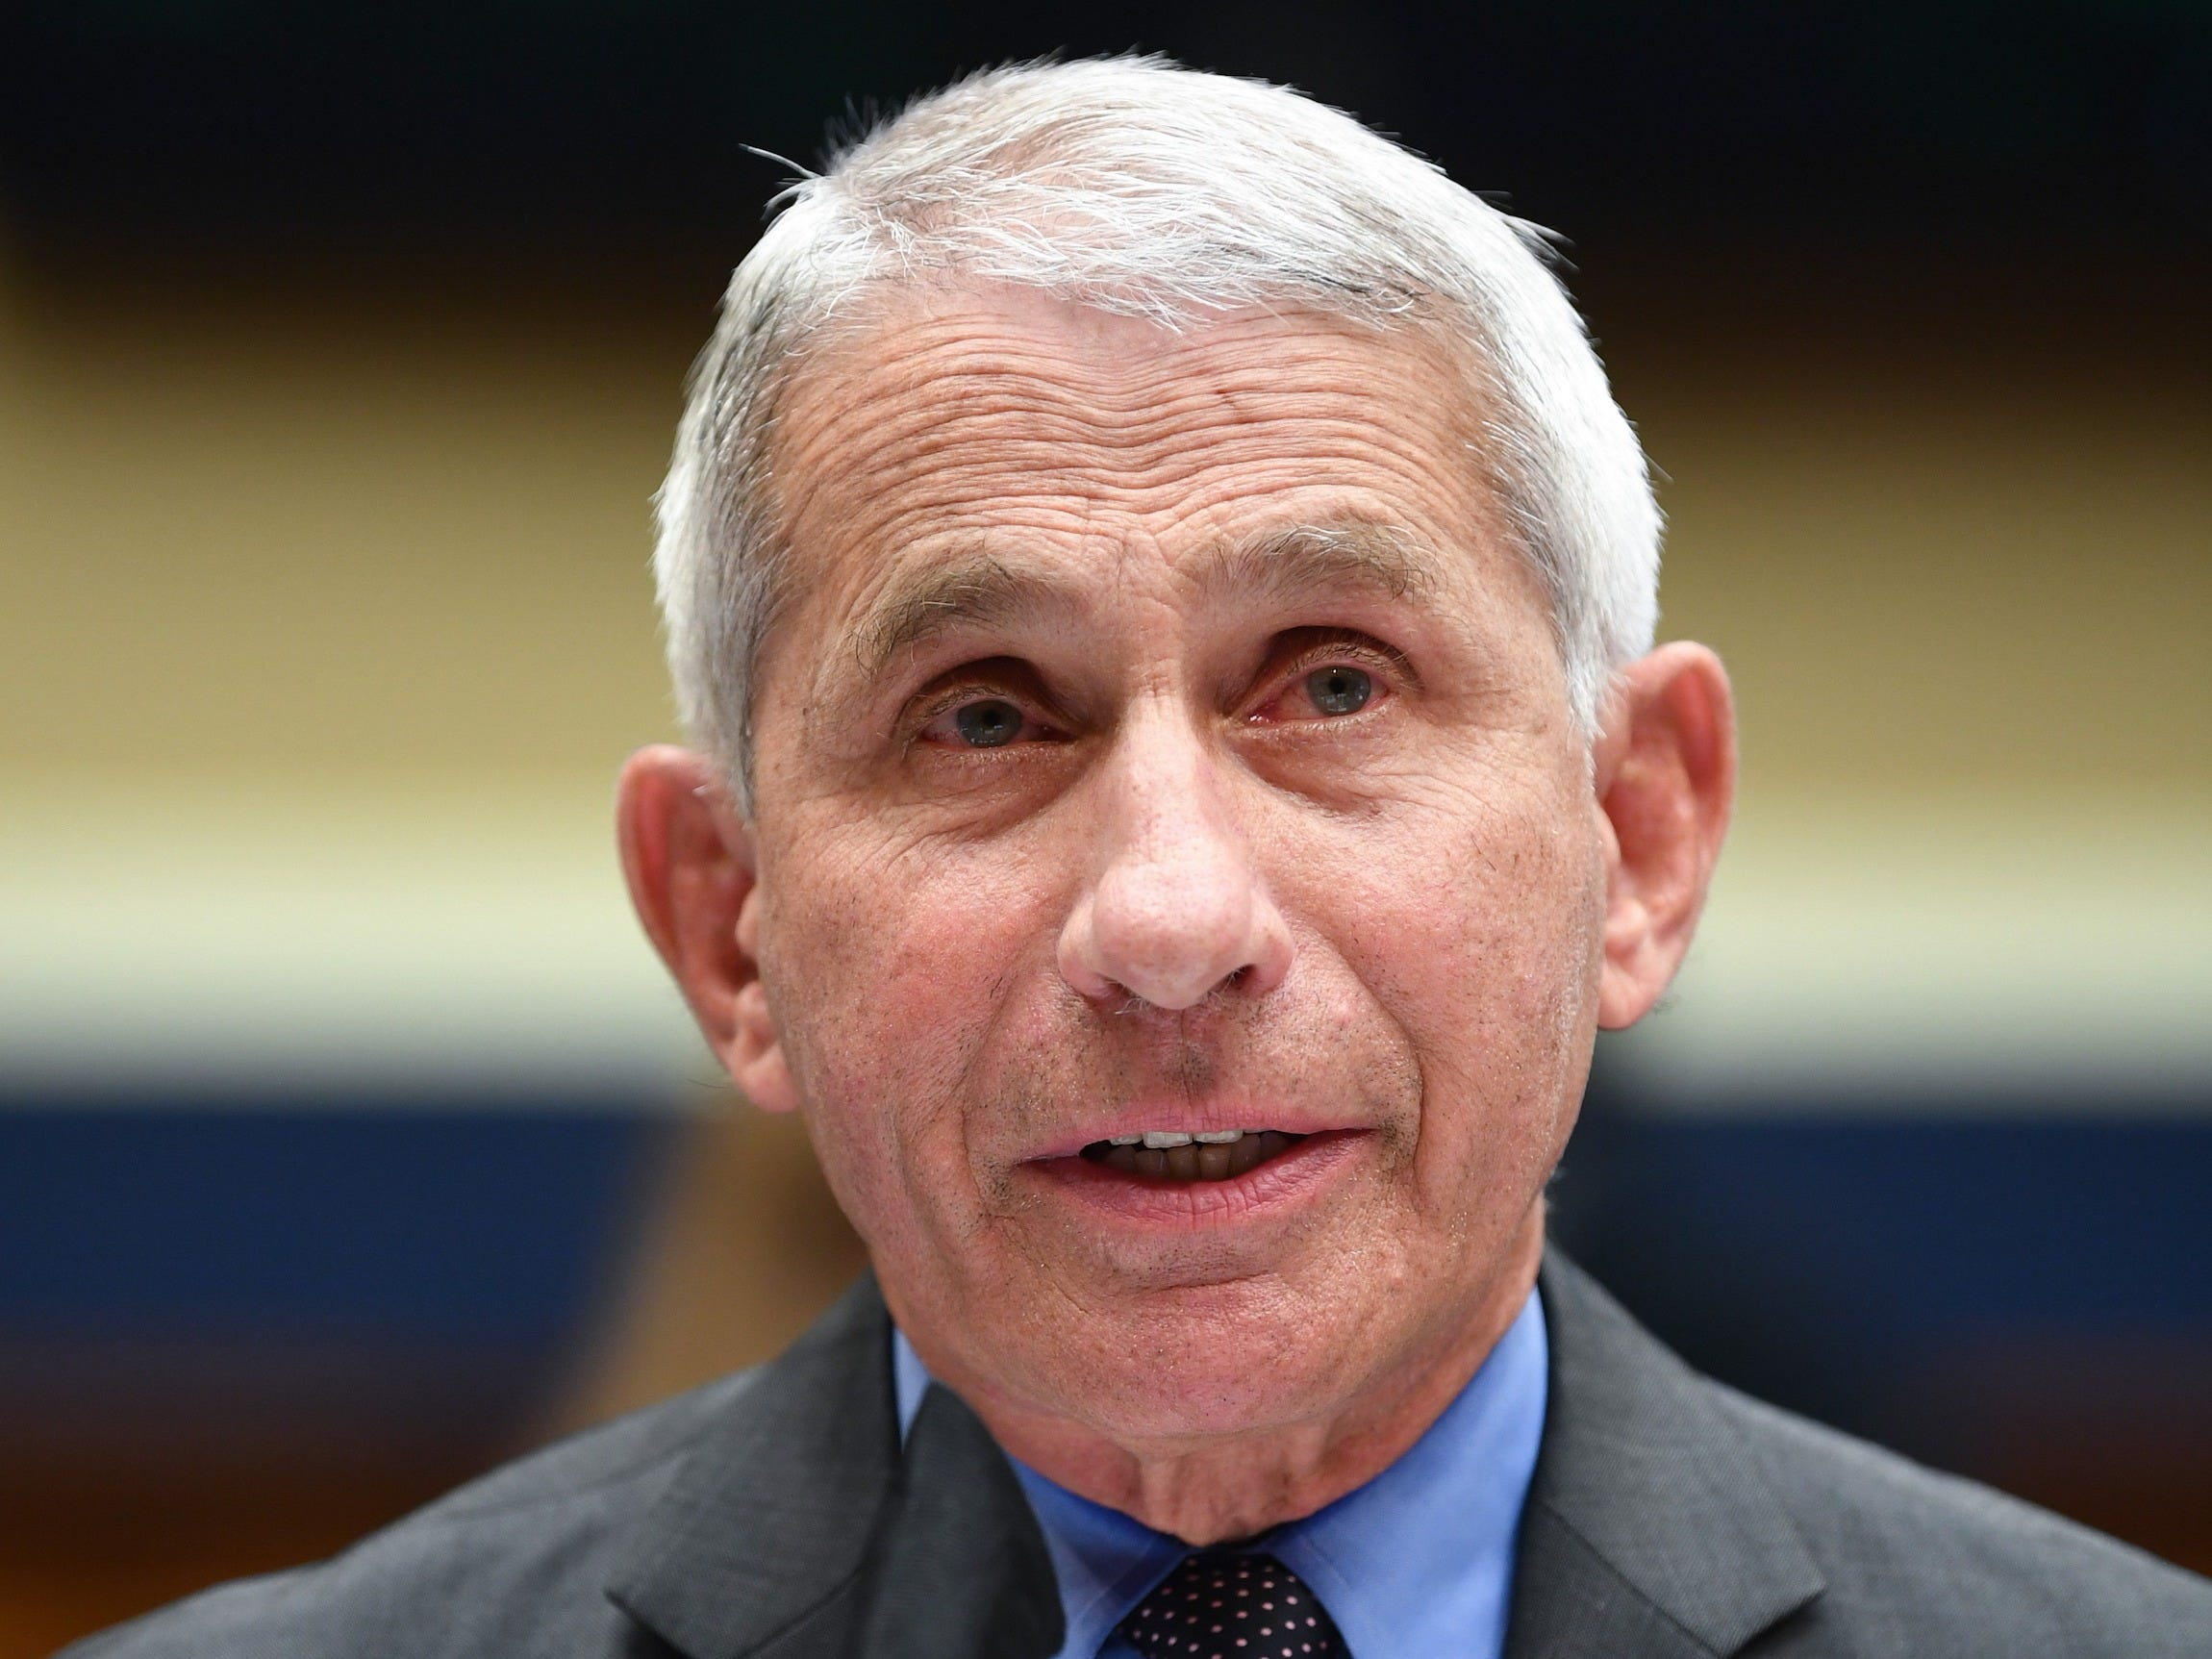 "Dr. Anthony Fauci, Director of the National Institute for Allergy and Infectious Diseases, testifies before the US Senate Health, Education, Labor, and Pensions Committee hearing to examine COVID-19, ""focusing on lessons learned to prepare for the next pandemic"", on Capitol Hill in Washington, DC on June 23, 2020. (Image by Kevin Dietsch/AFP via Getty Images)"